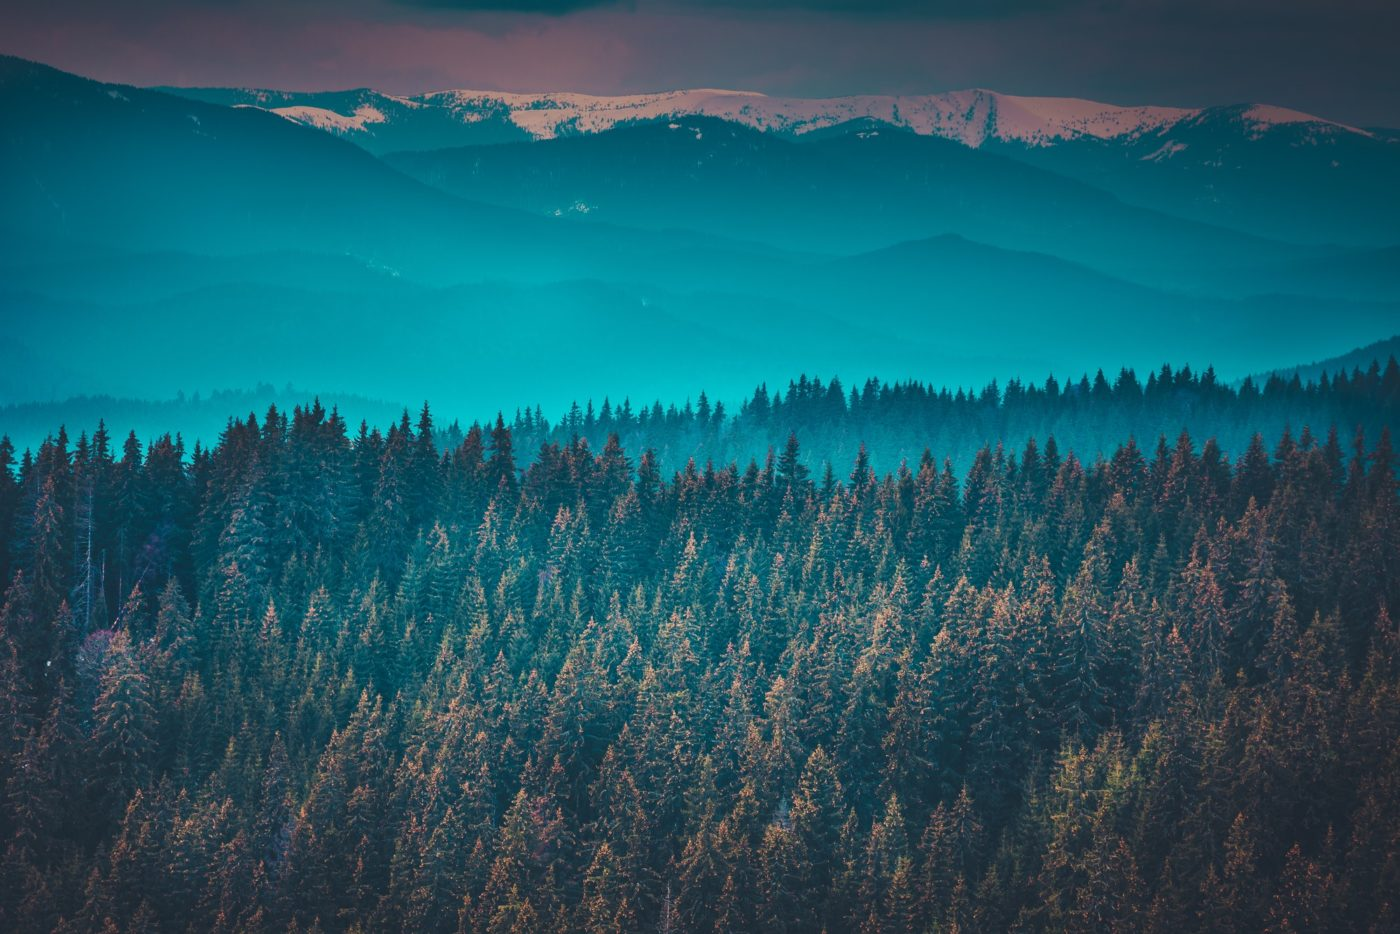 Fantastic mountain peaks and forest